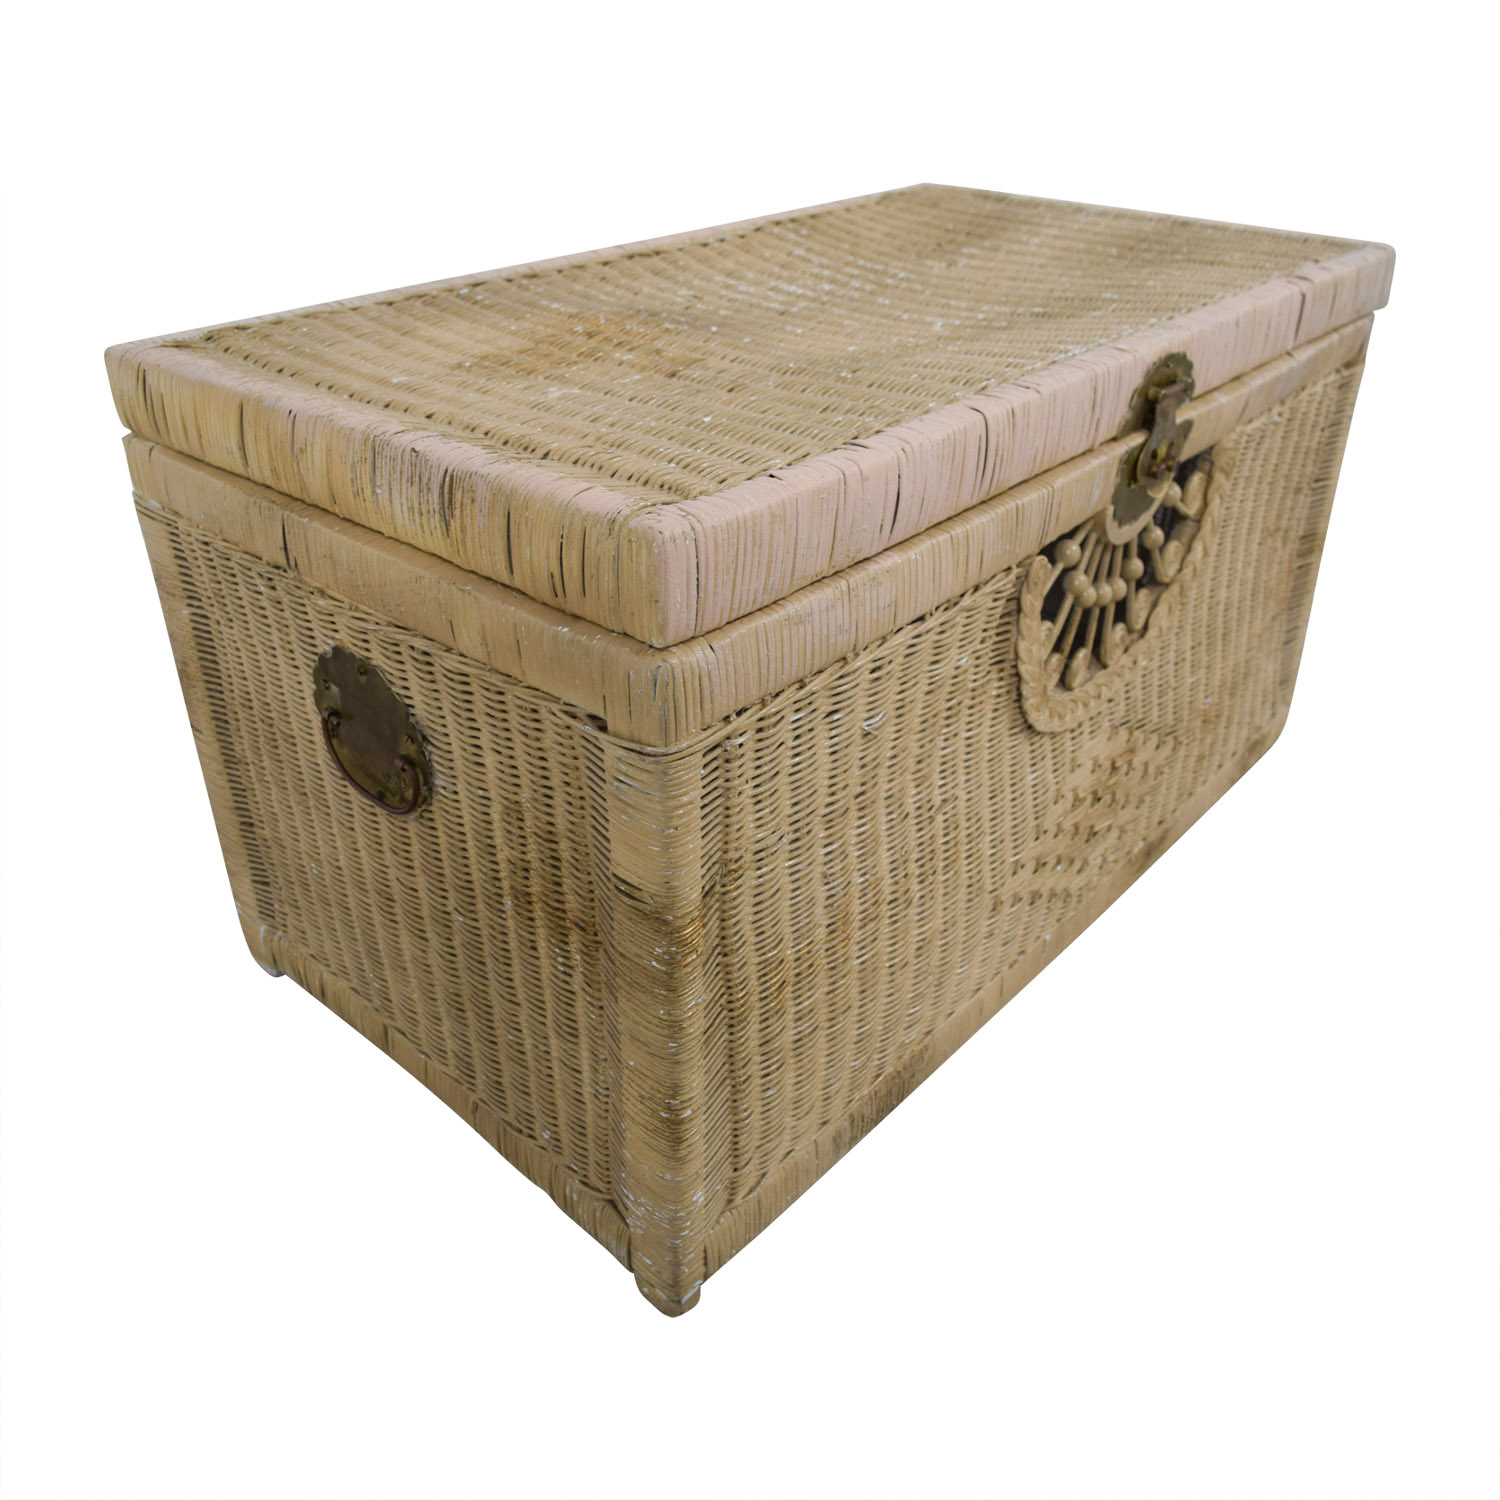 Pier 1 Imports Natural Wicker Trunk Pier 1 Imports